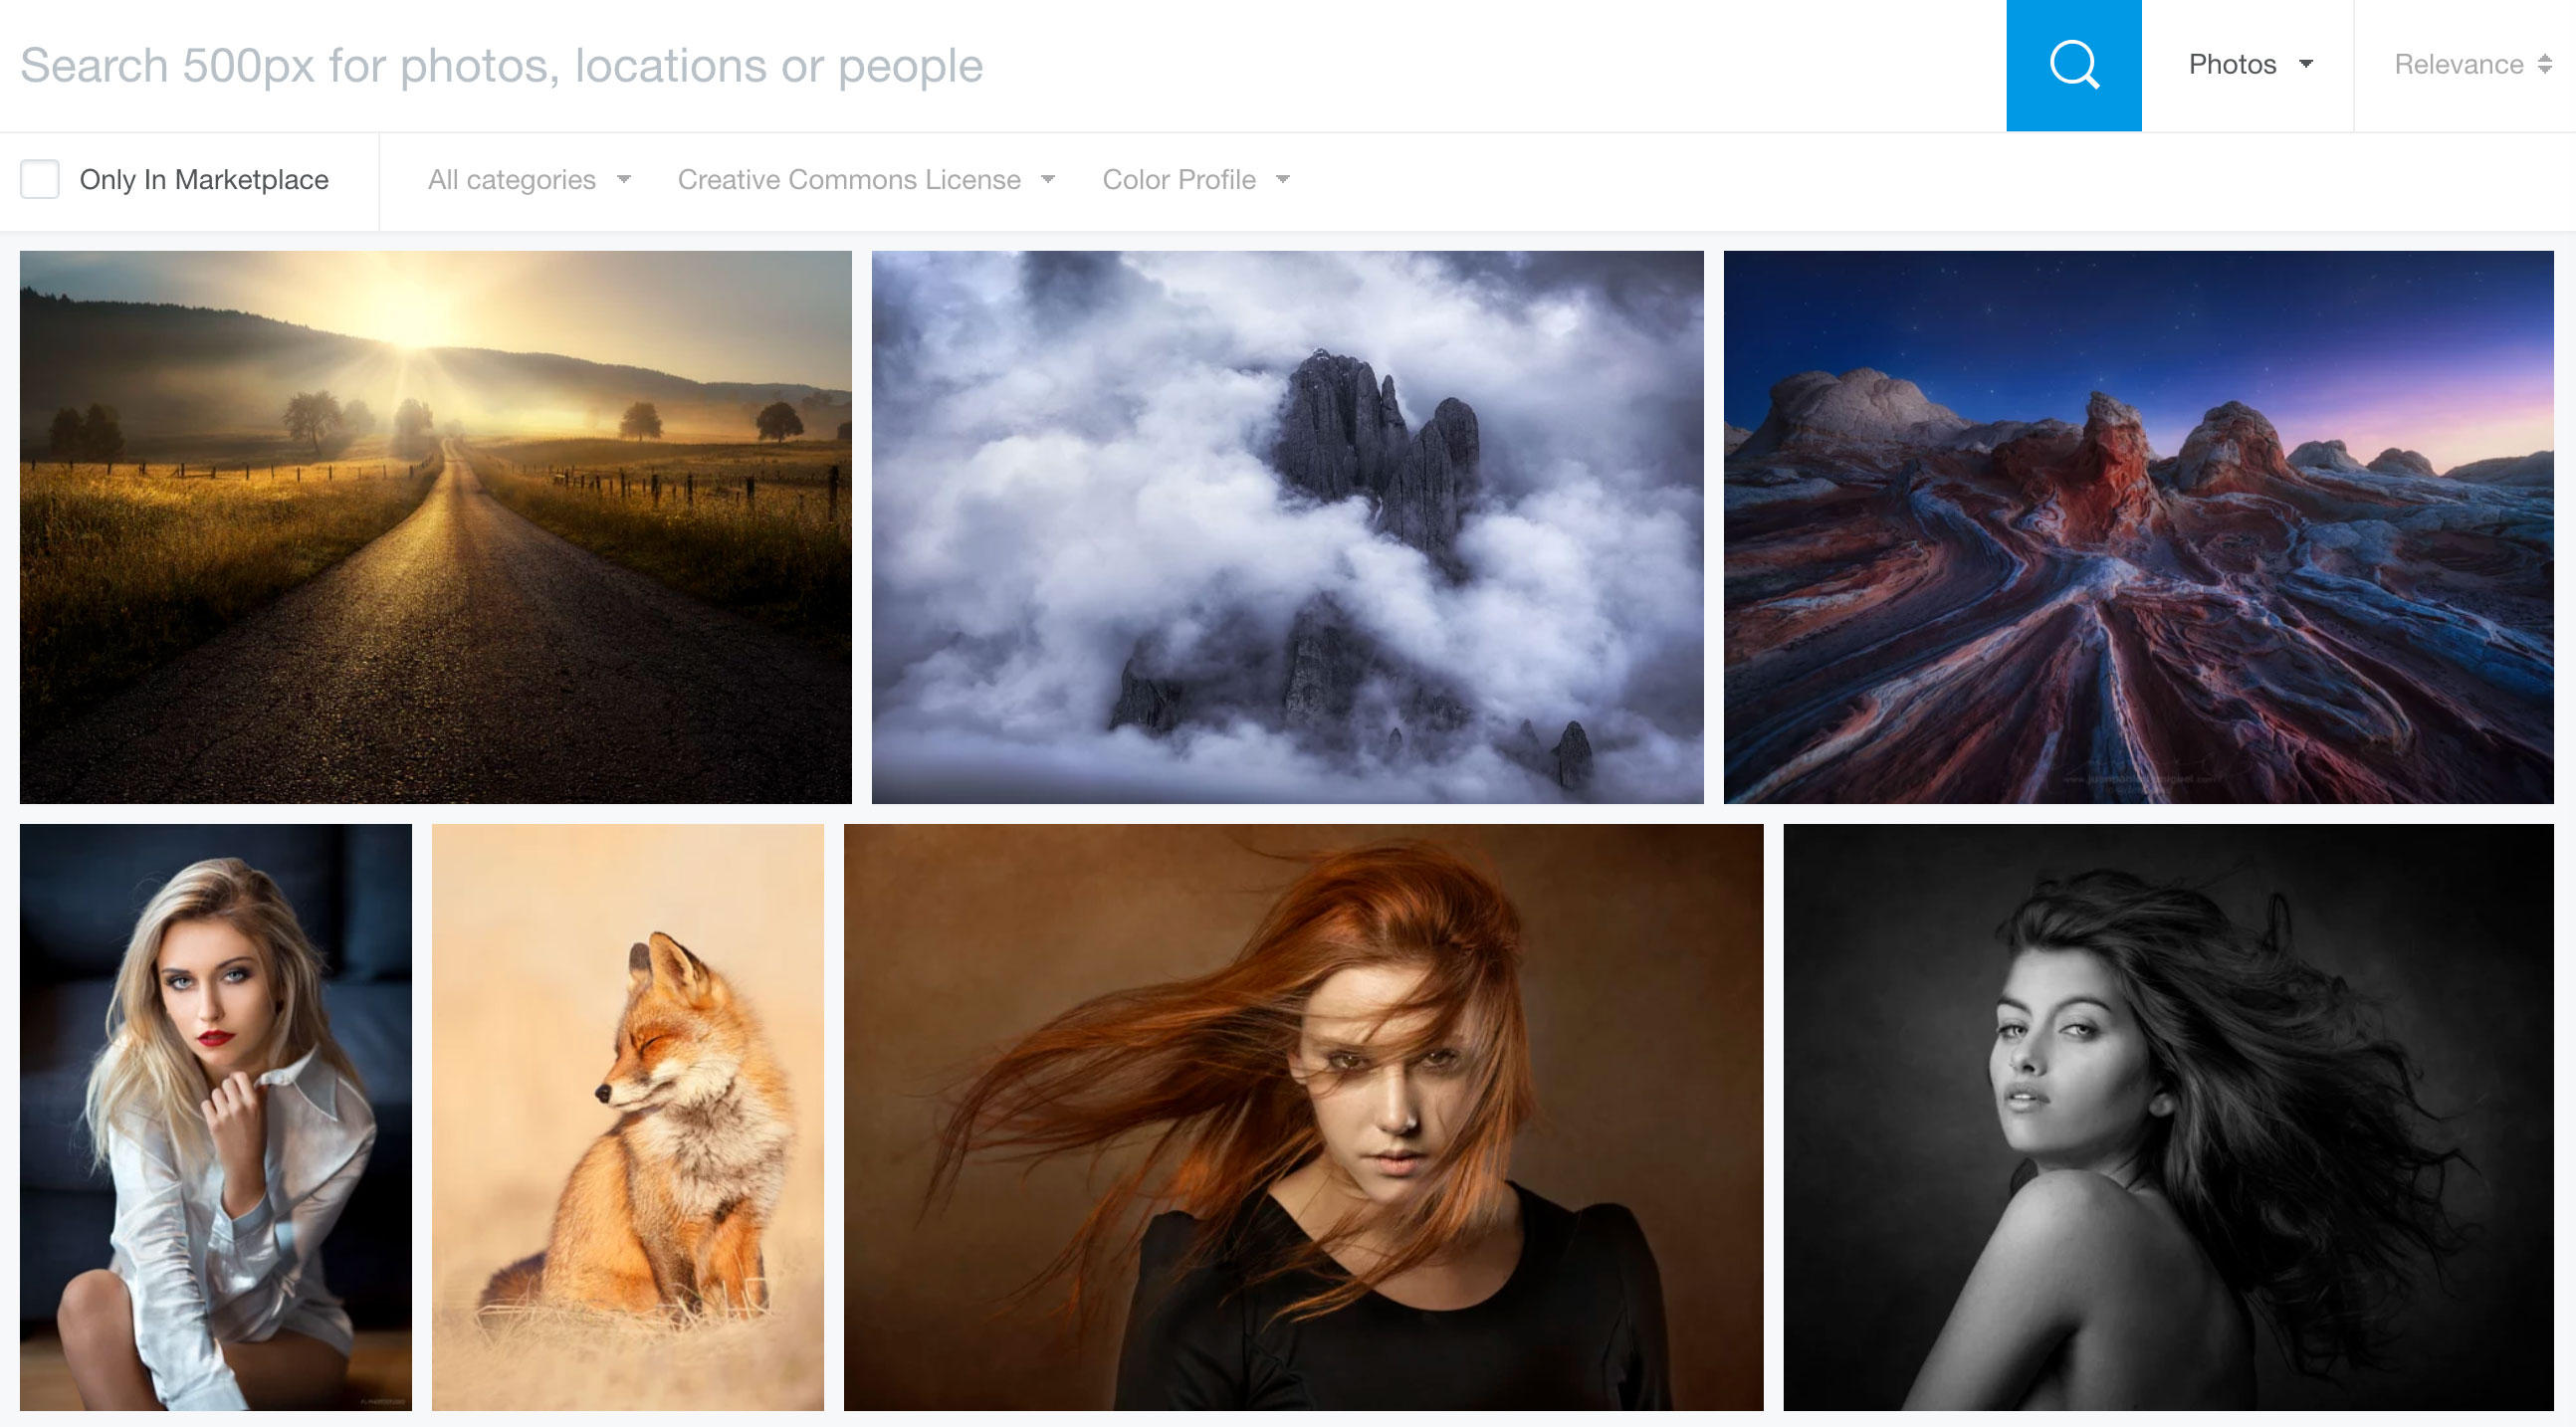 The 500px site for photo sharing and licensing is getting rid of the ability to offer or retrieve images shared under the liberal terms of Creative Commons licenses.